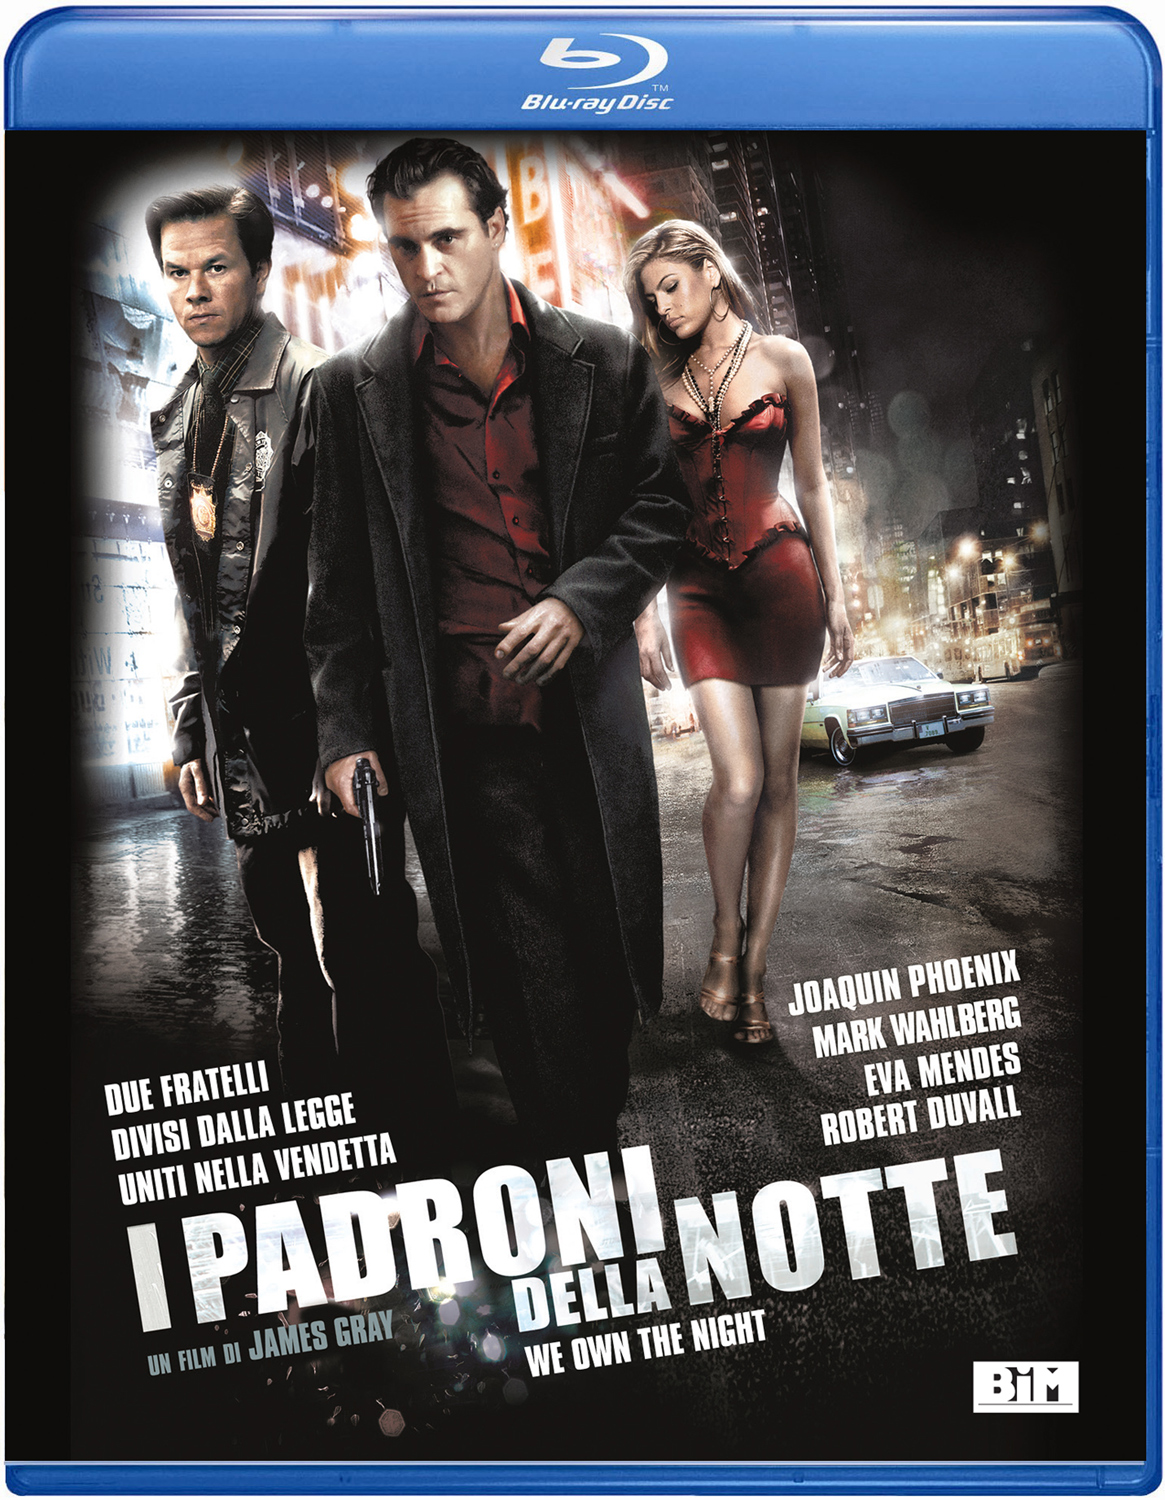 I Padroni della Notte (2007) UNTOUCHED 1080p DTS_ENG_ITA AC3_ENG_ITA SUBS